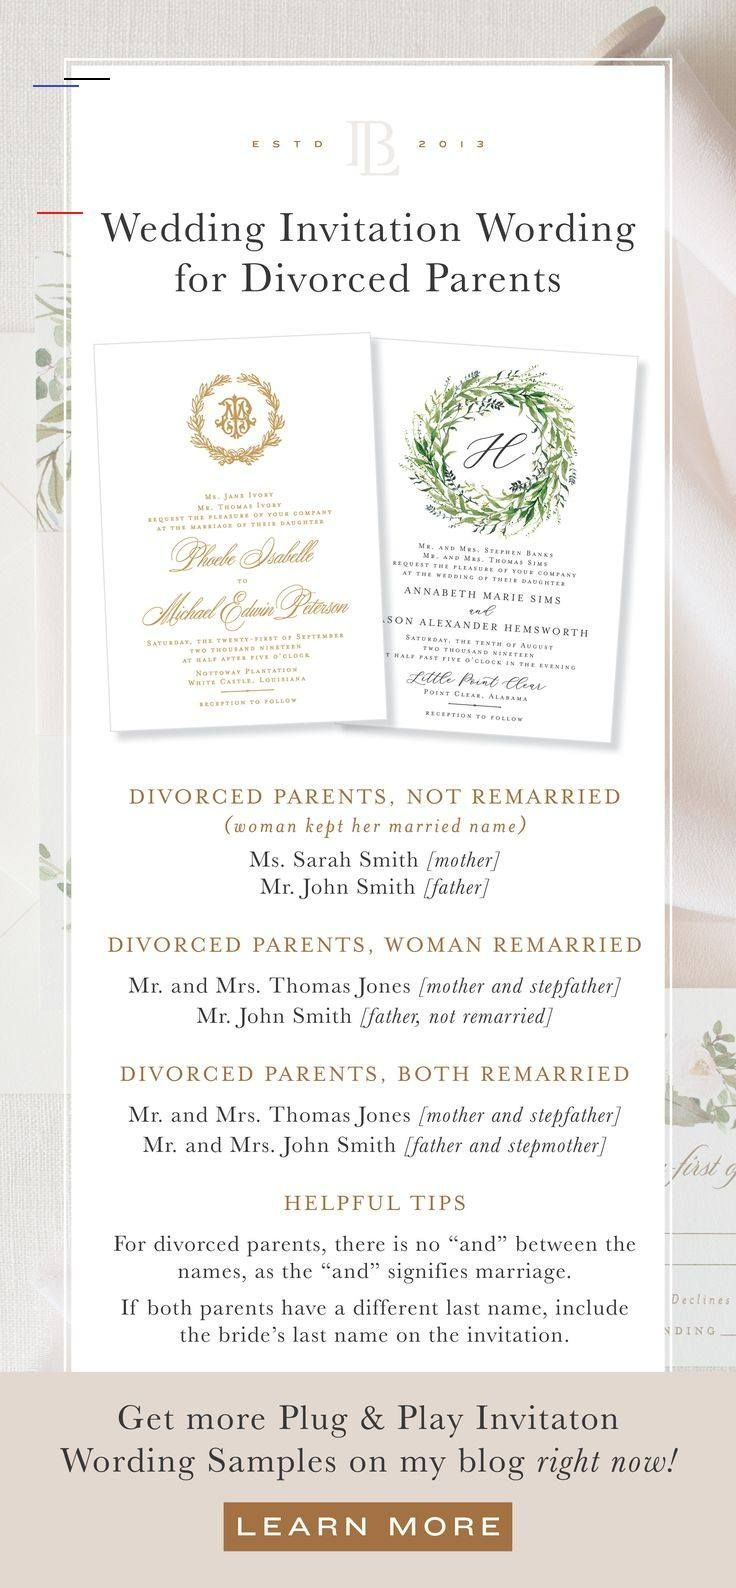 Wedding Invitation Wording Examples For No Children Divorced Parents An In 2020 Wedding Invitation Wording Formal Formal Invitation Wording Trendy Wedding Invitations